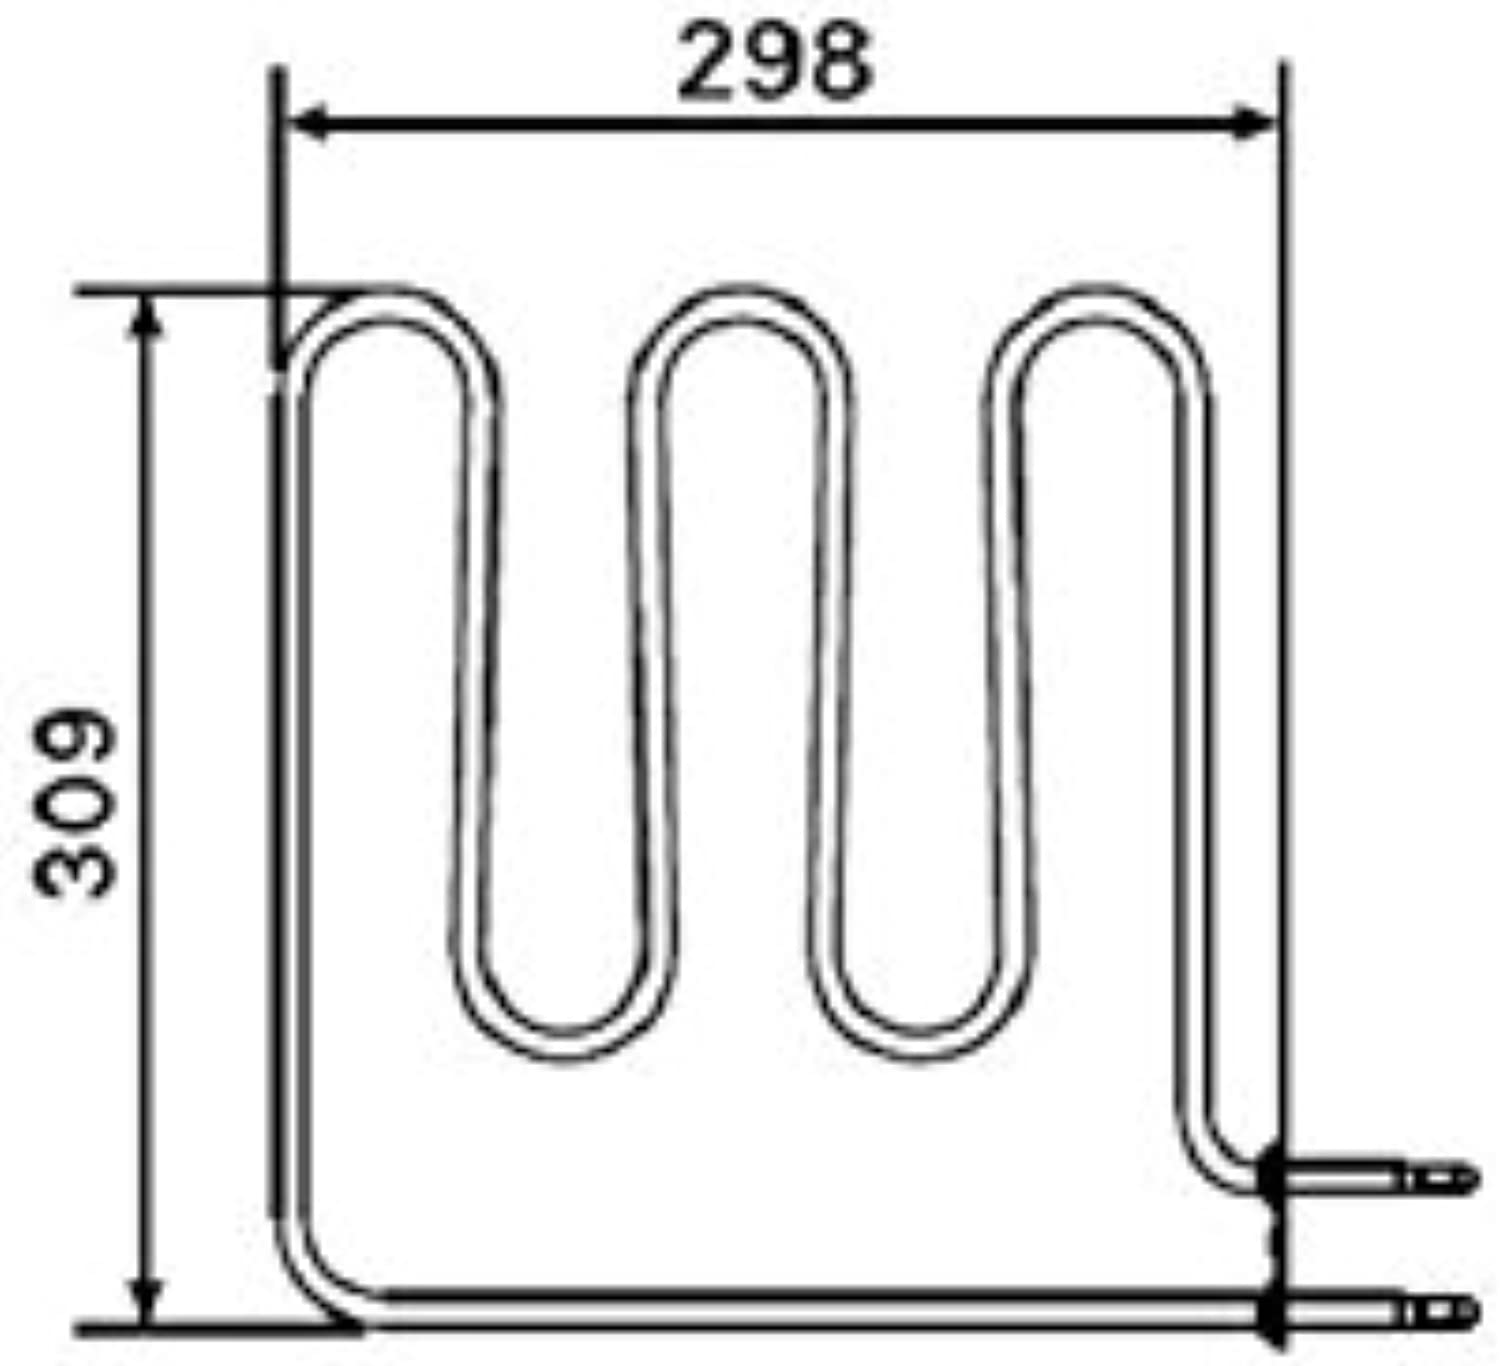 Harvia HEATING ELEMENTS ZSB-224 (1,5 kW)   ZSB-226 (2.0 kW)   ZSB-228 (2,67 kW)   ZSB-229 (3,0 kW) (ZSB-224 (1,5 kW))